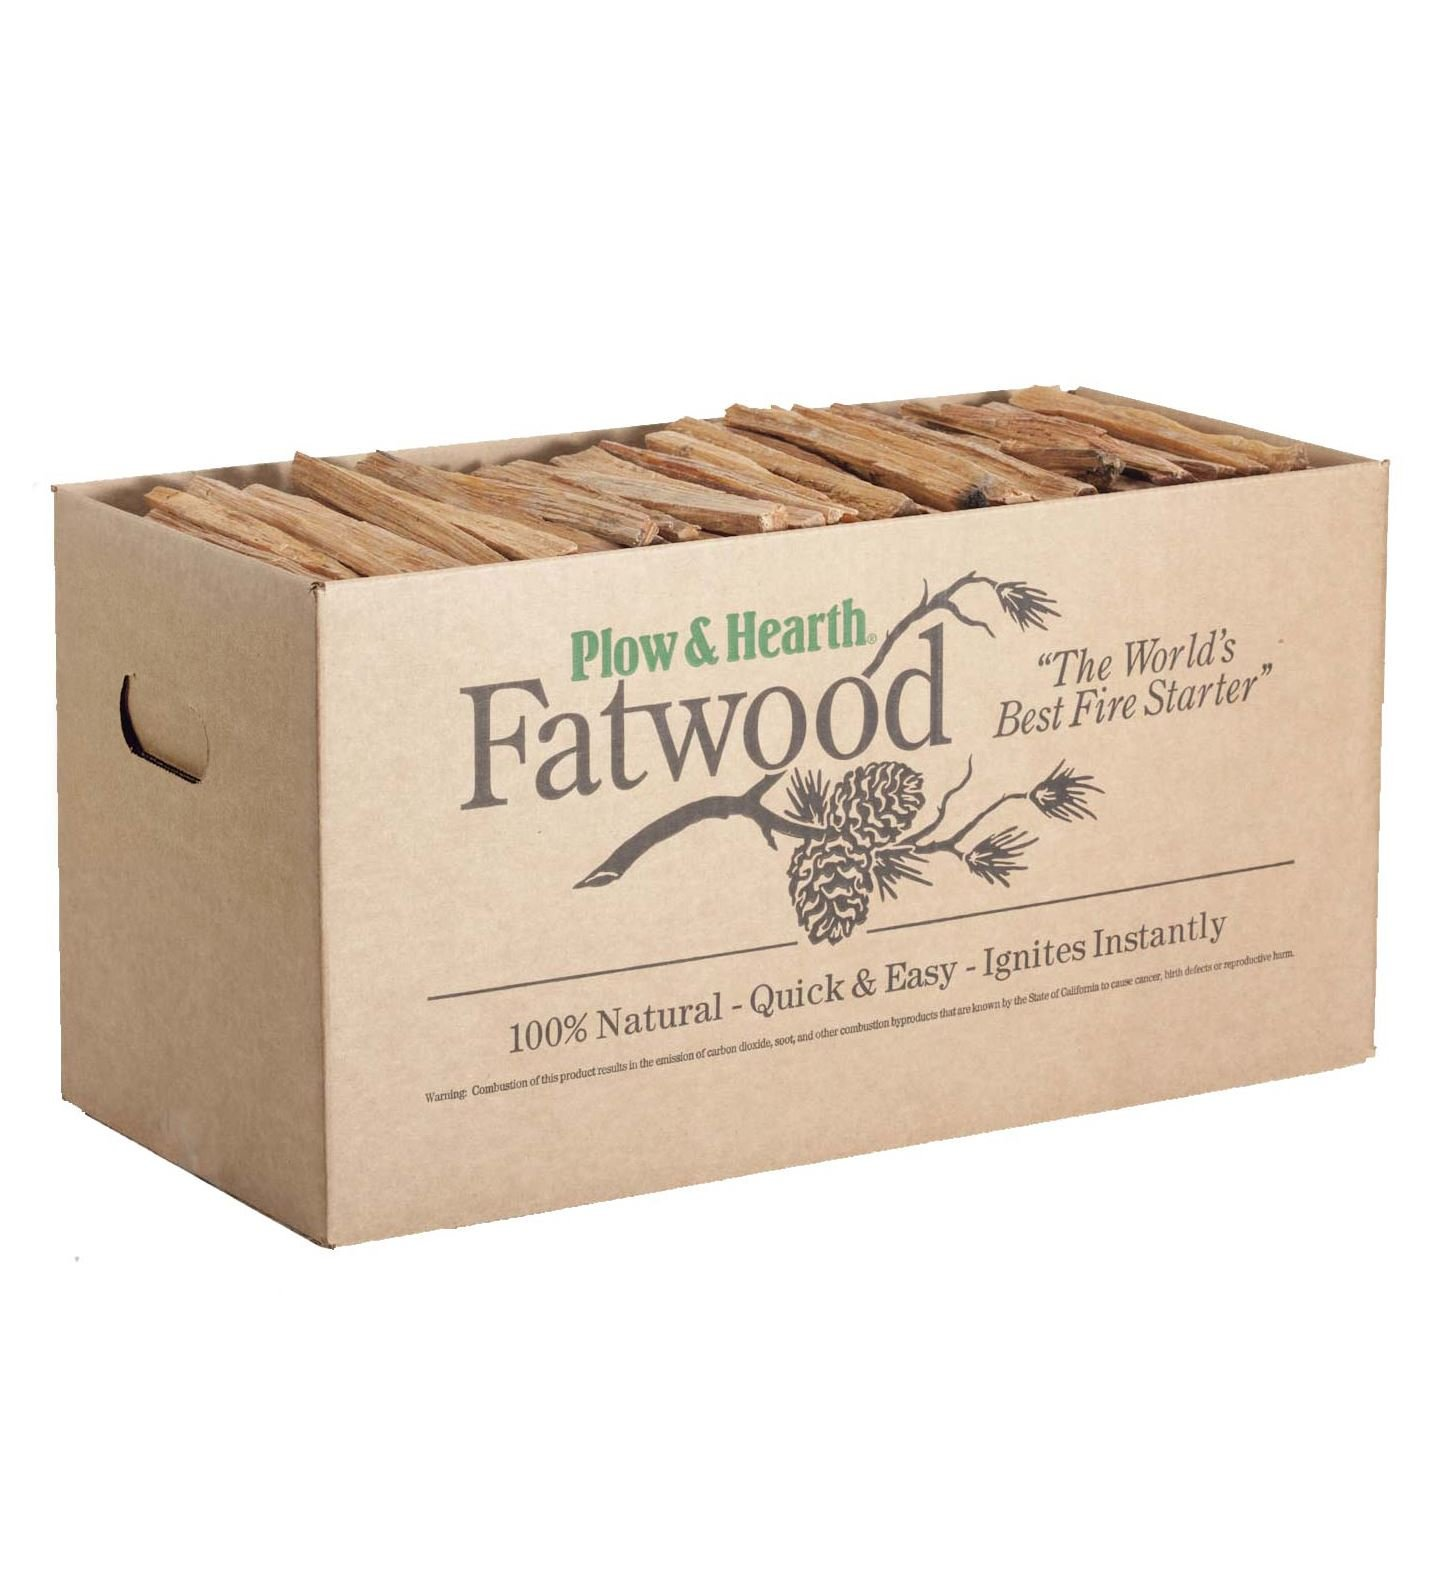 Plow & Hearth Fatwood Fire-Starter, 40 lb. Box by Plow & Hearth